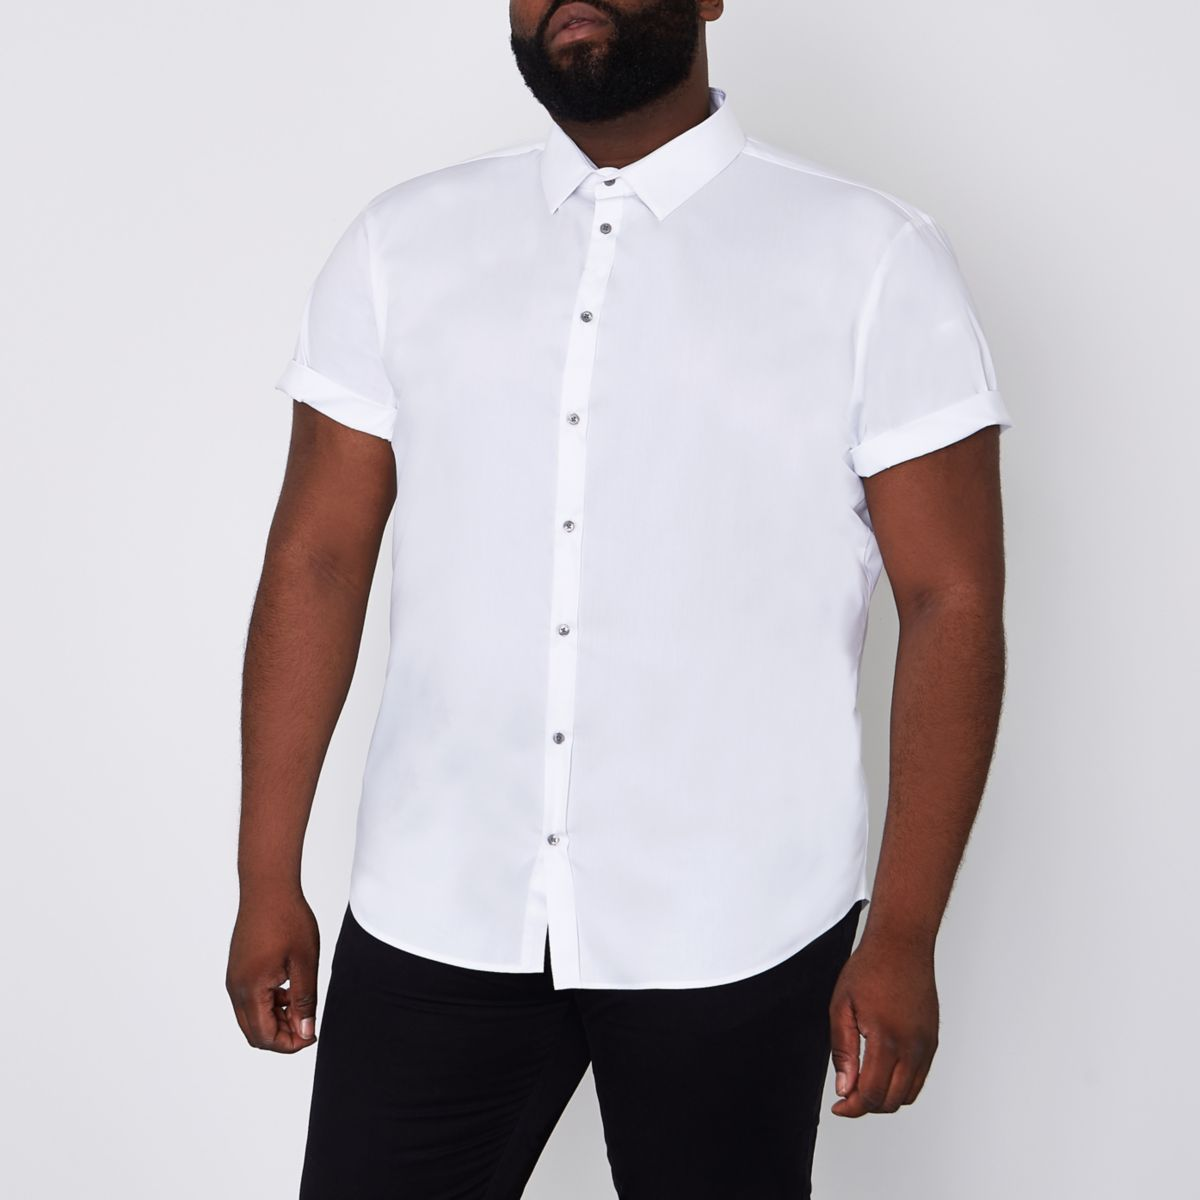 White Big and Tall short sleeve shirt